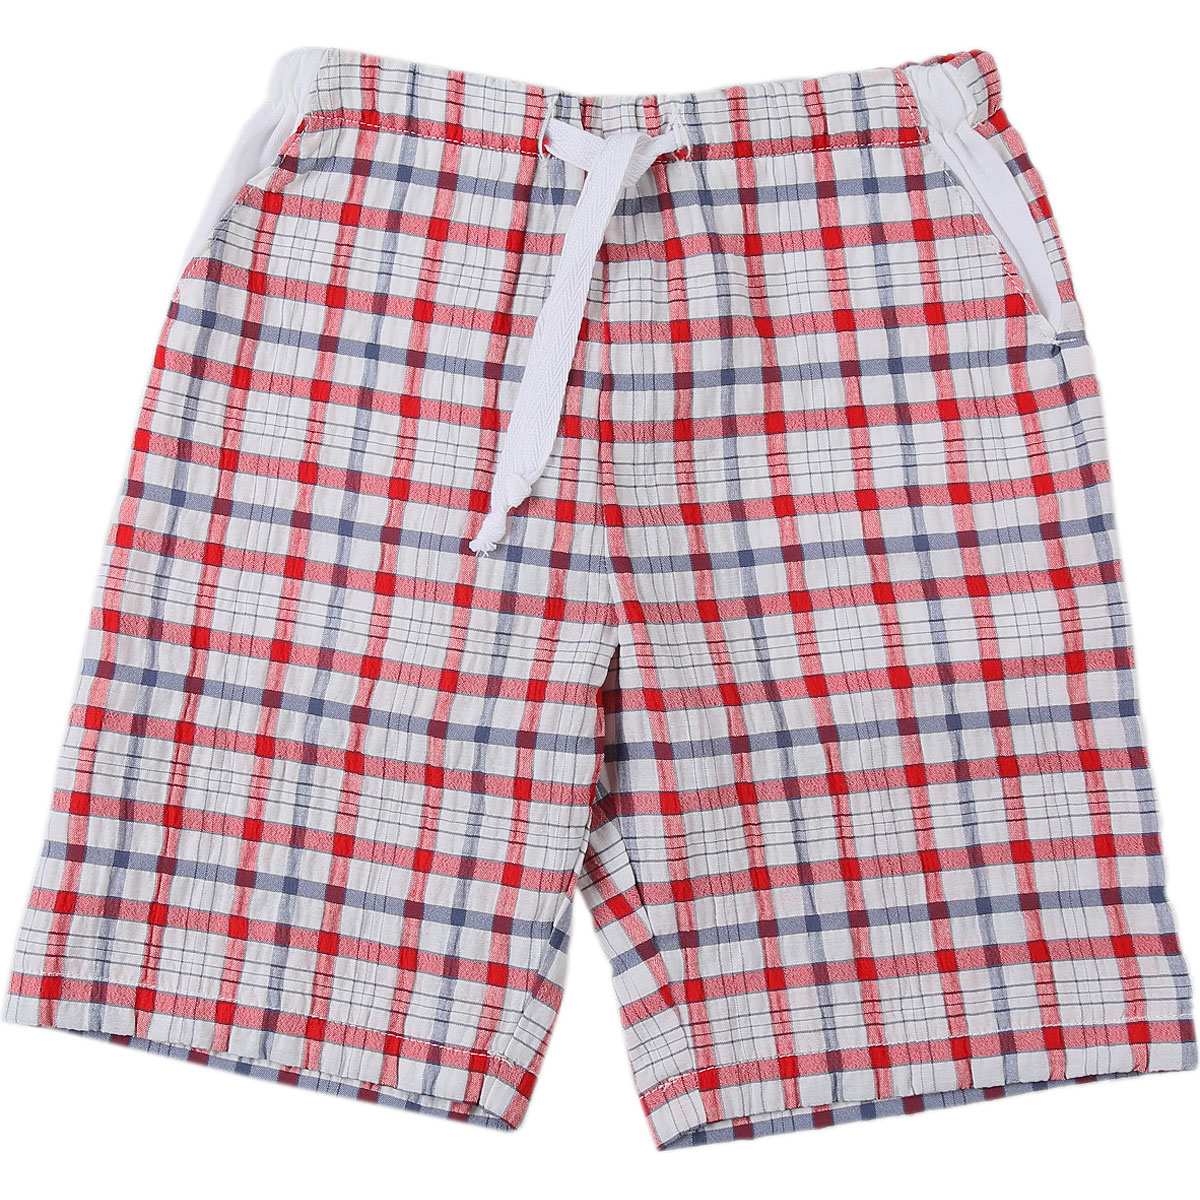 Le Nouveau Ne Baby Shorts for Boys On Sale in Outlet, White, polyester, 2019, 12 M 3M